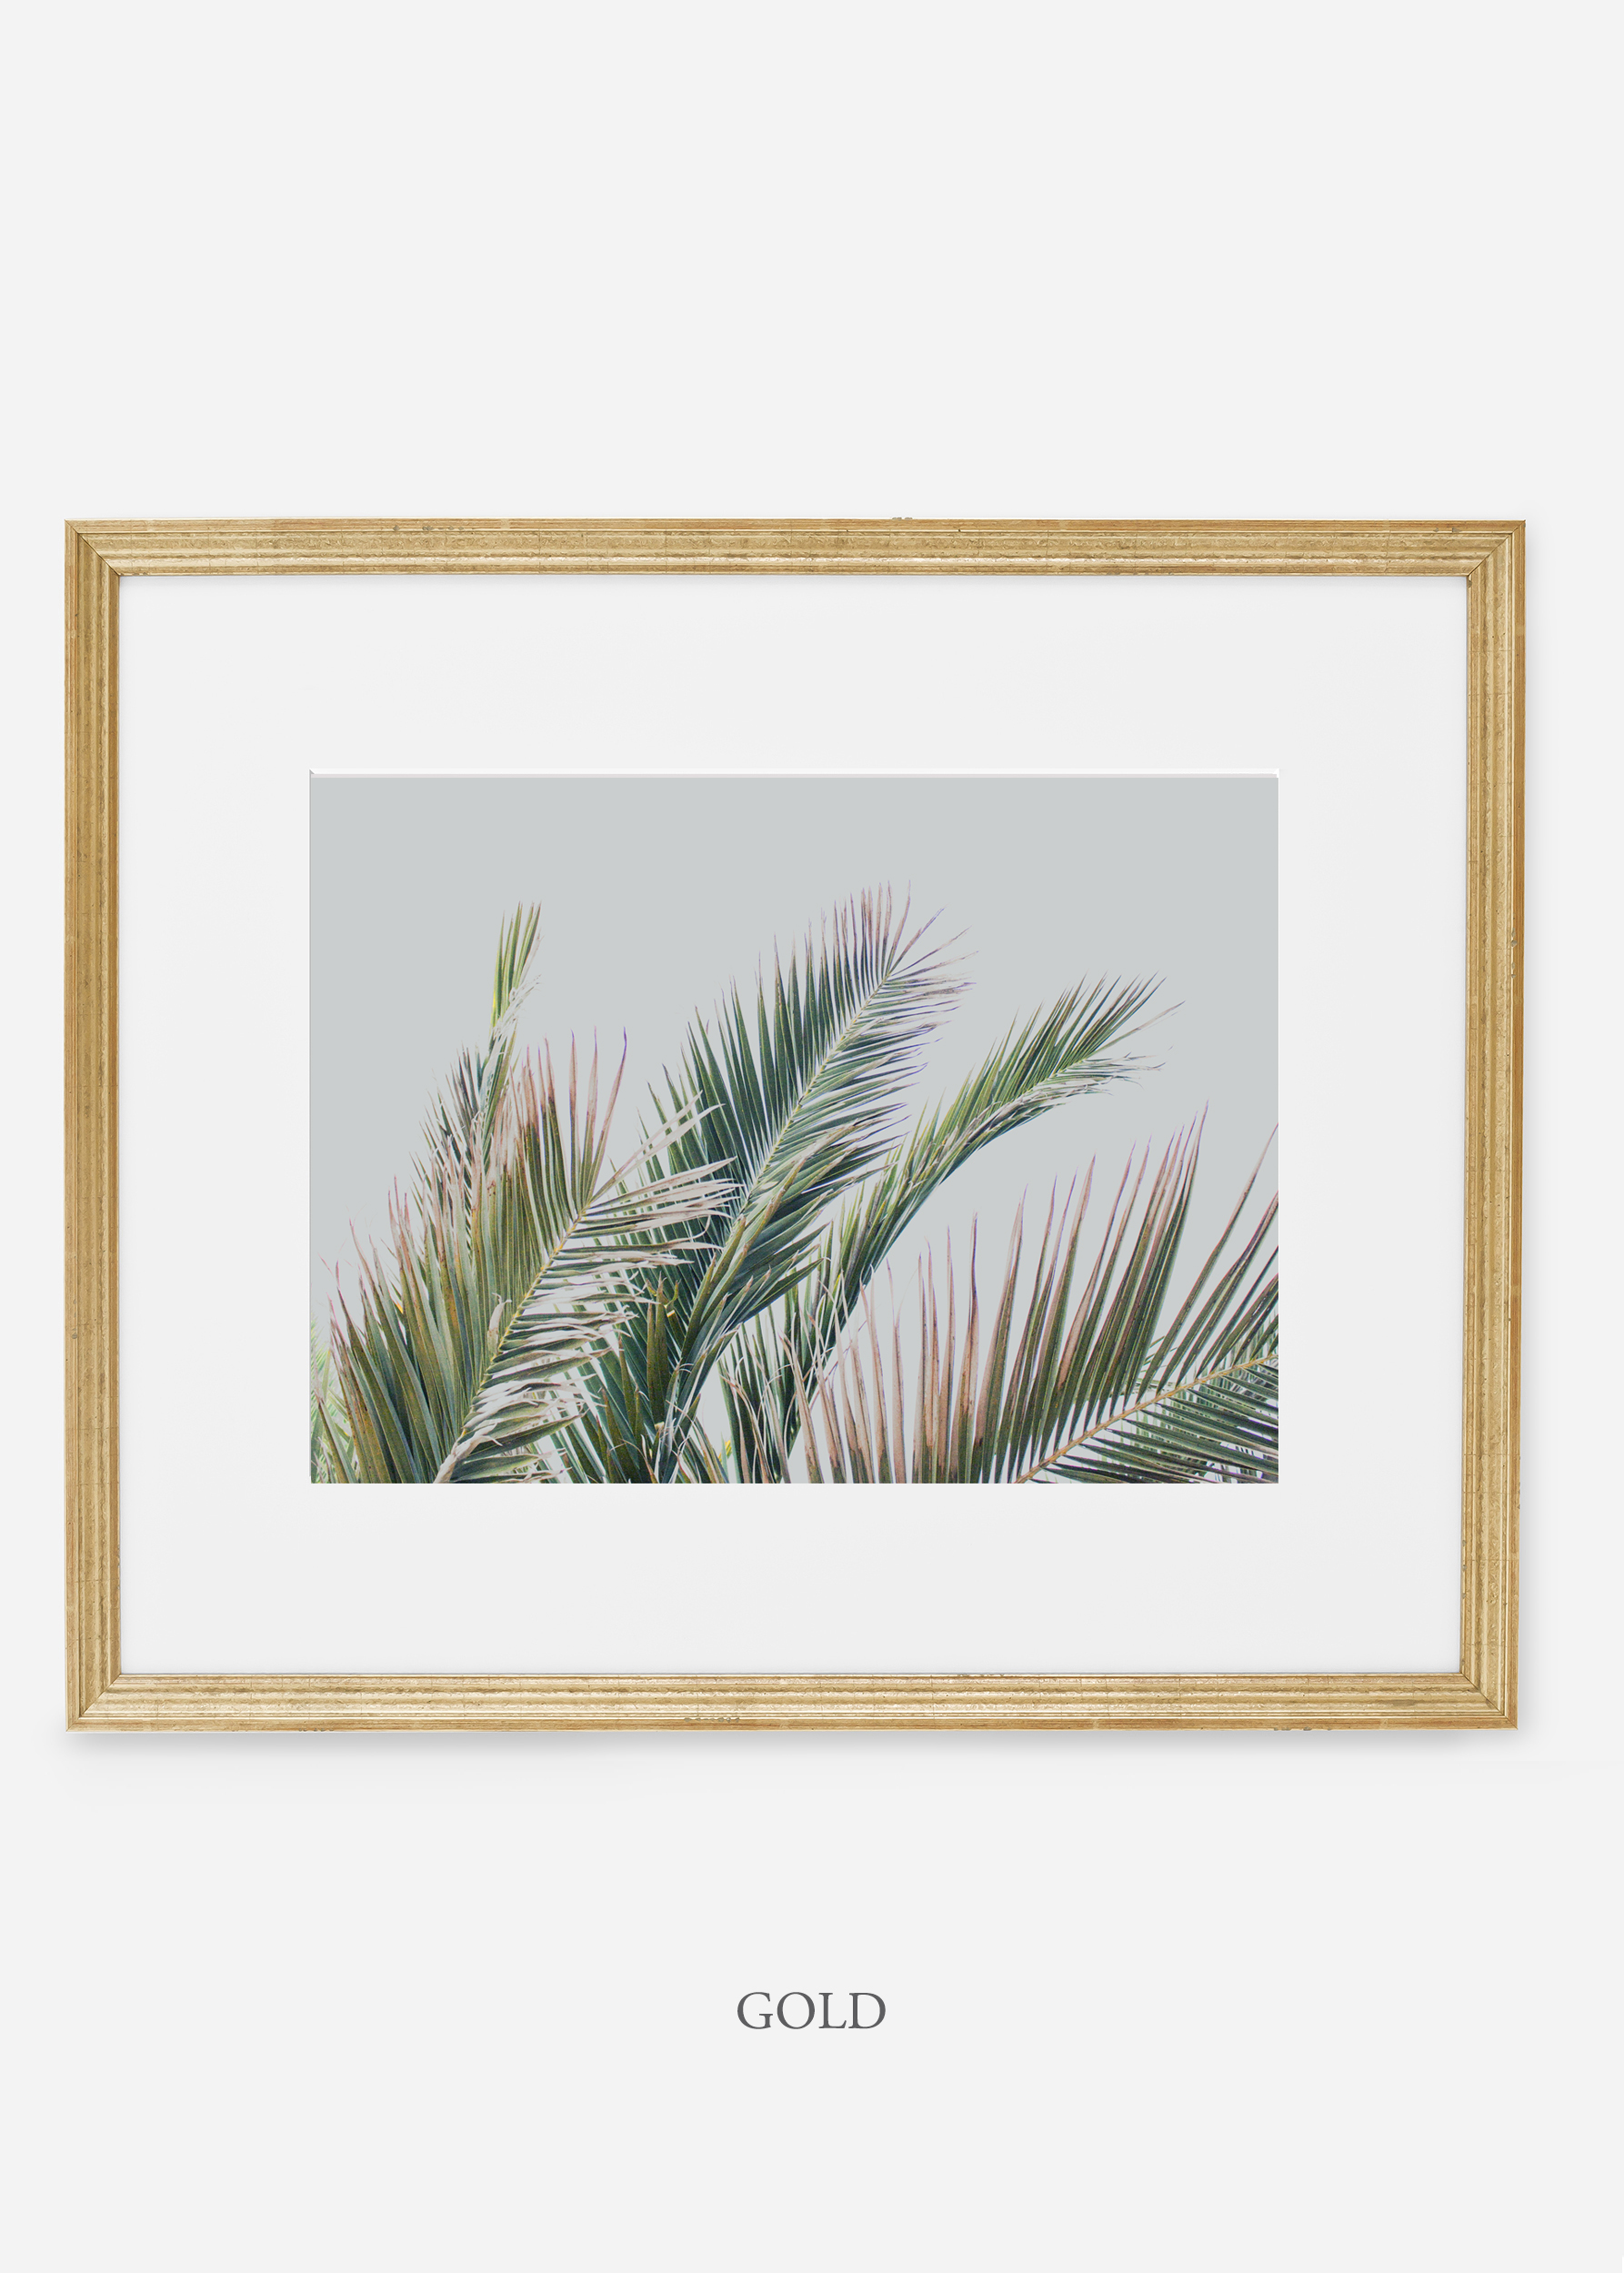 interiordesign_goldframe_art_tropical_palmtree_StormyGrayPalm.jpg